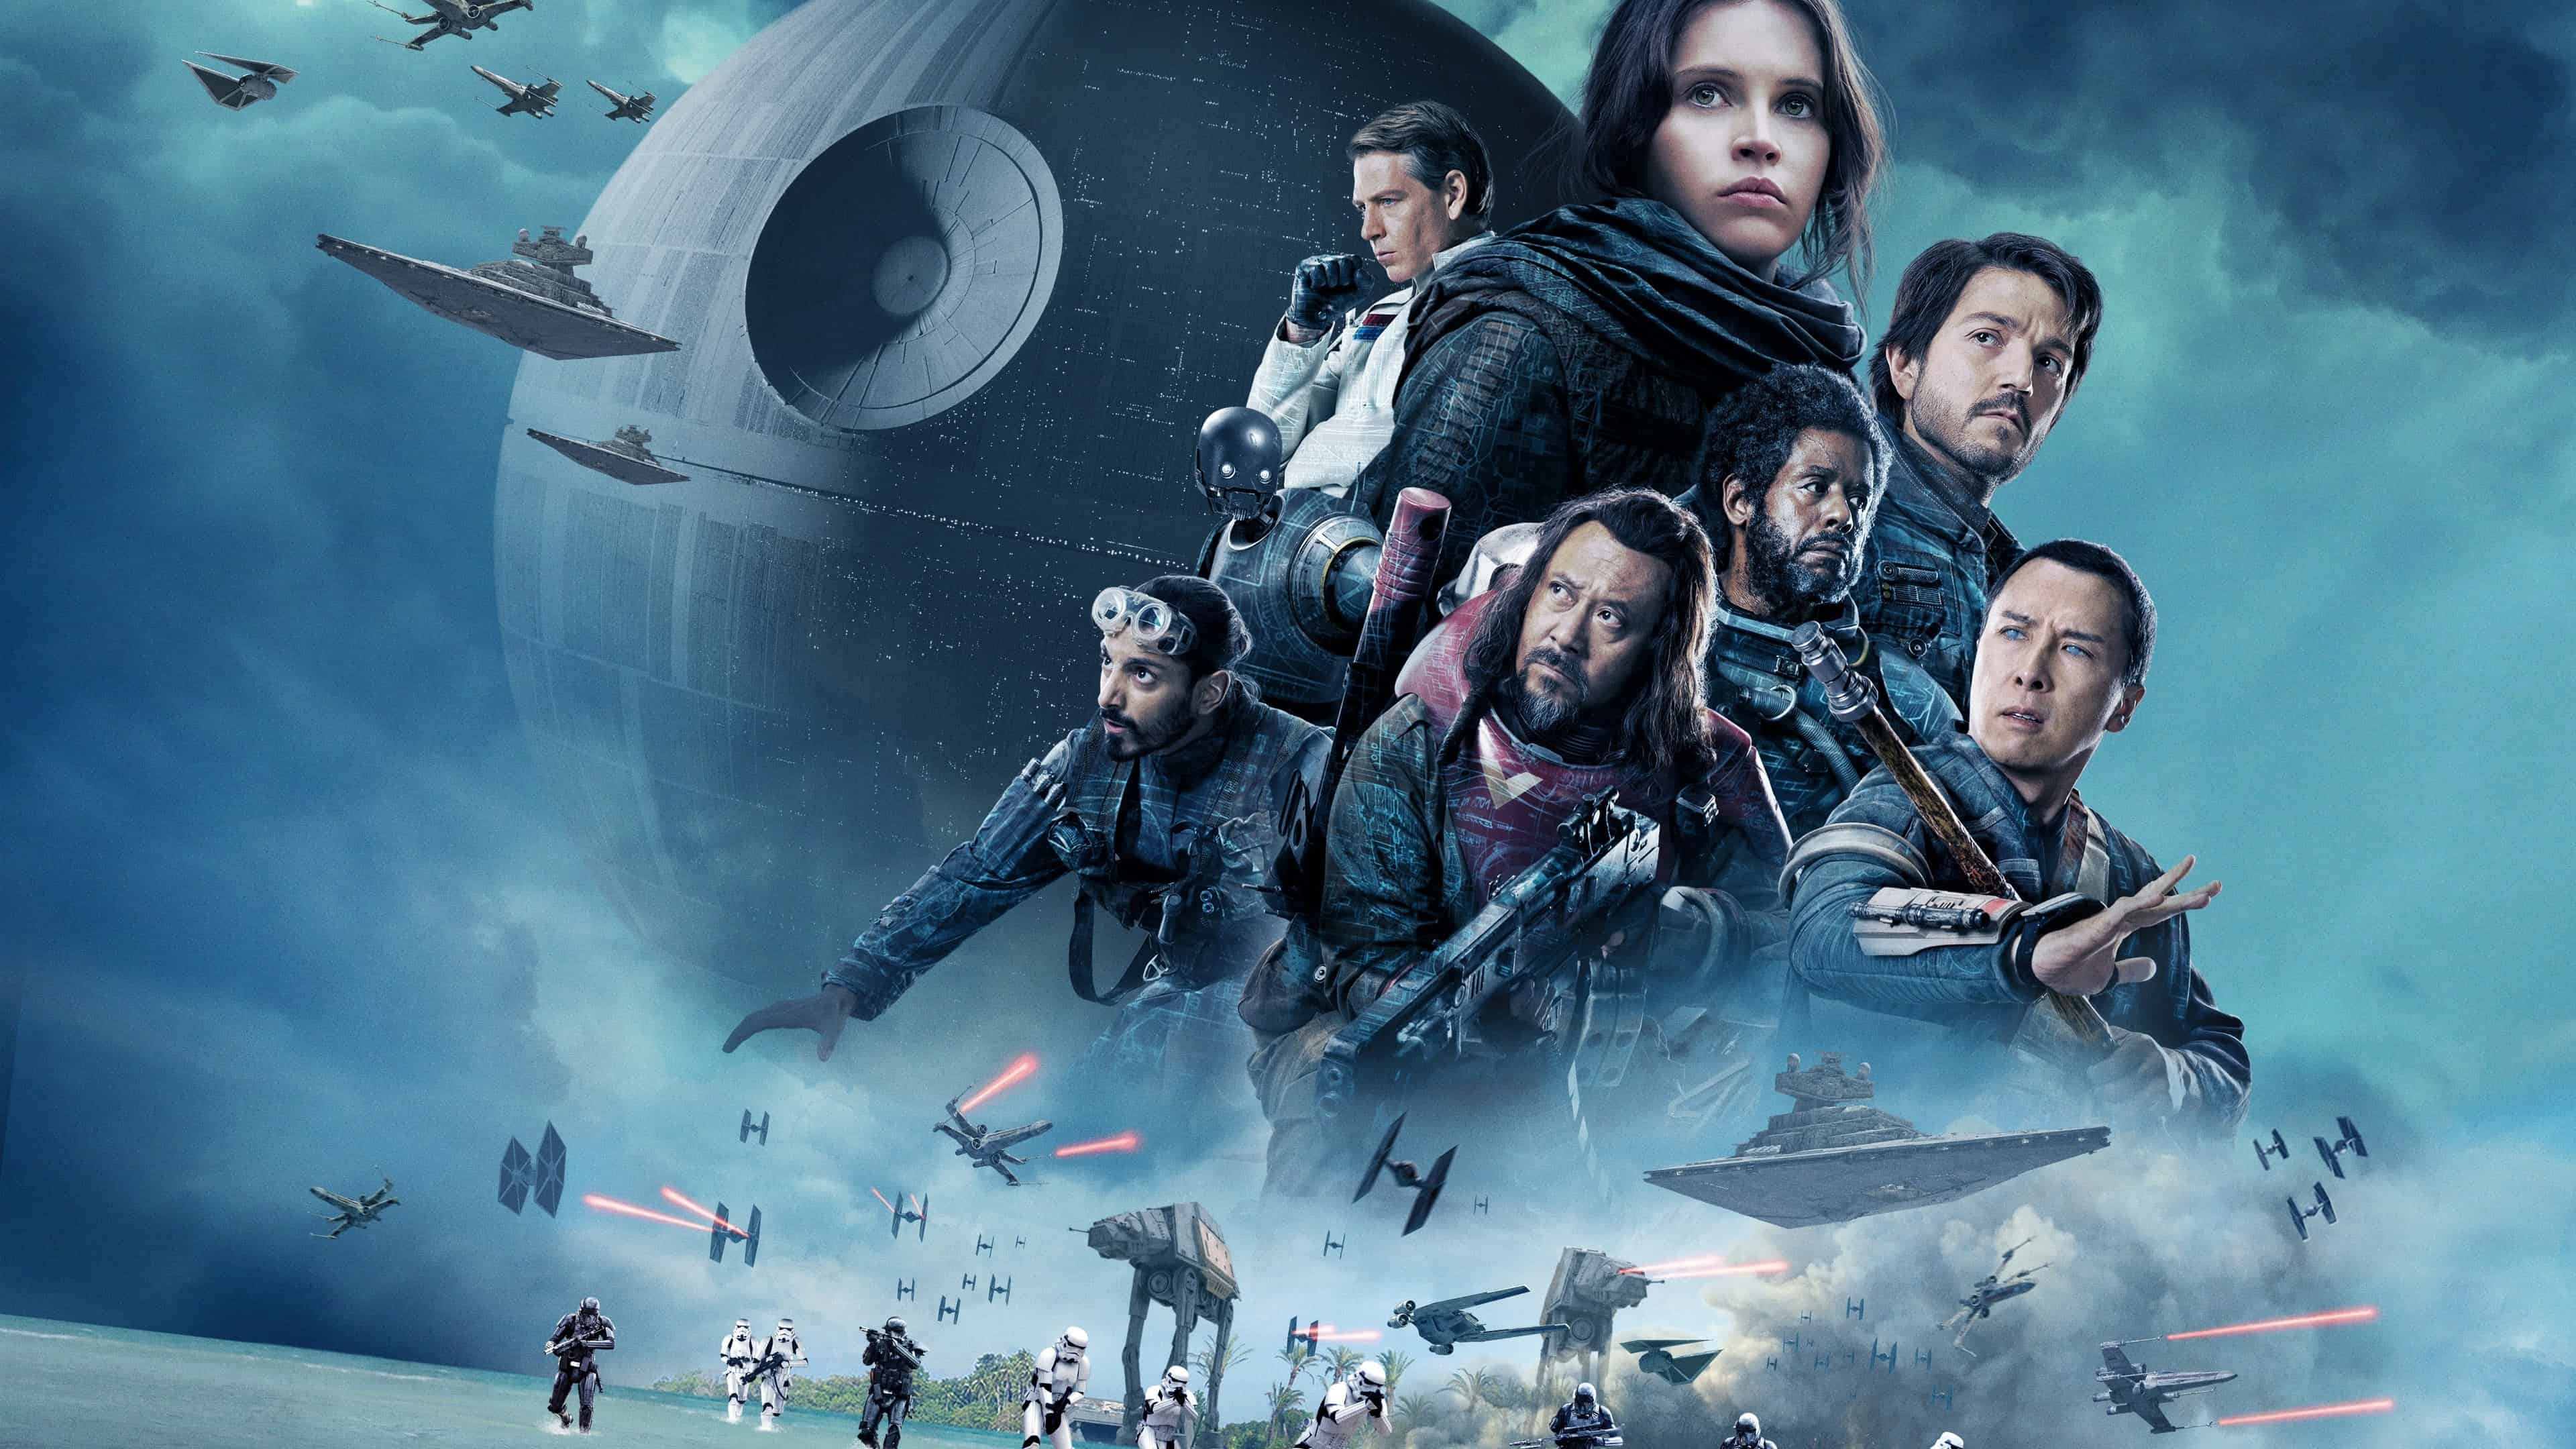 Star Wars Rogue One Desktop Wallpapers On Wallpaperdog